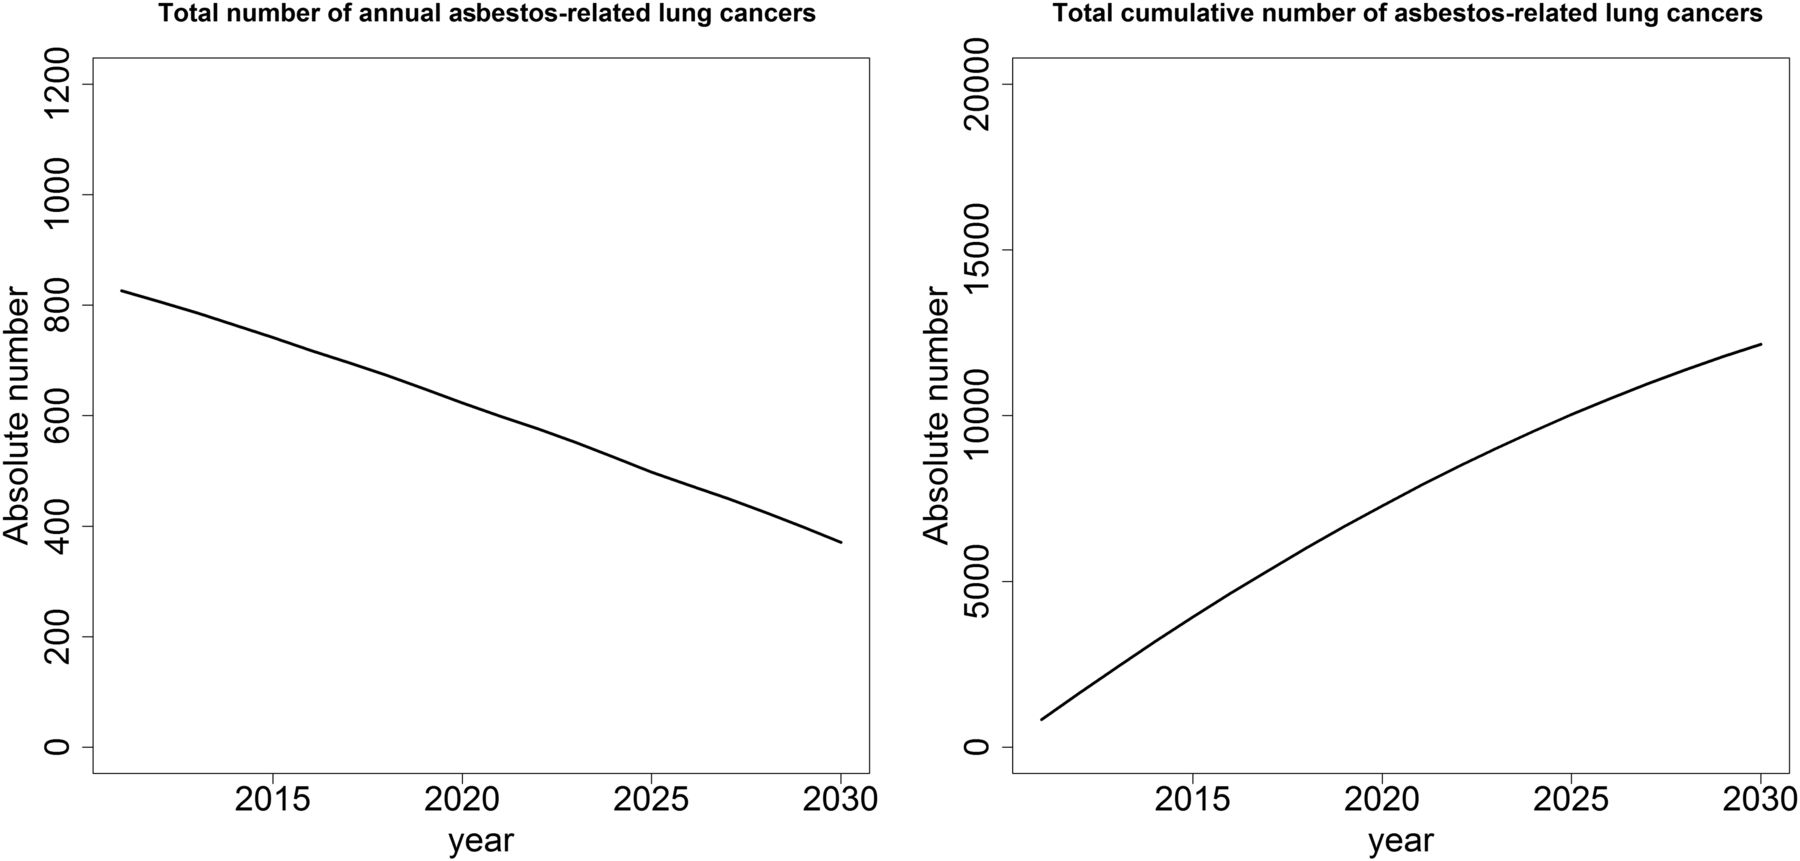 Expected number of asbestos-related lung cancers in the